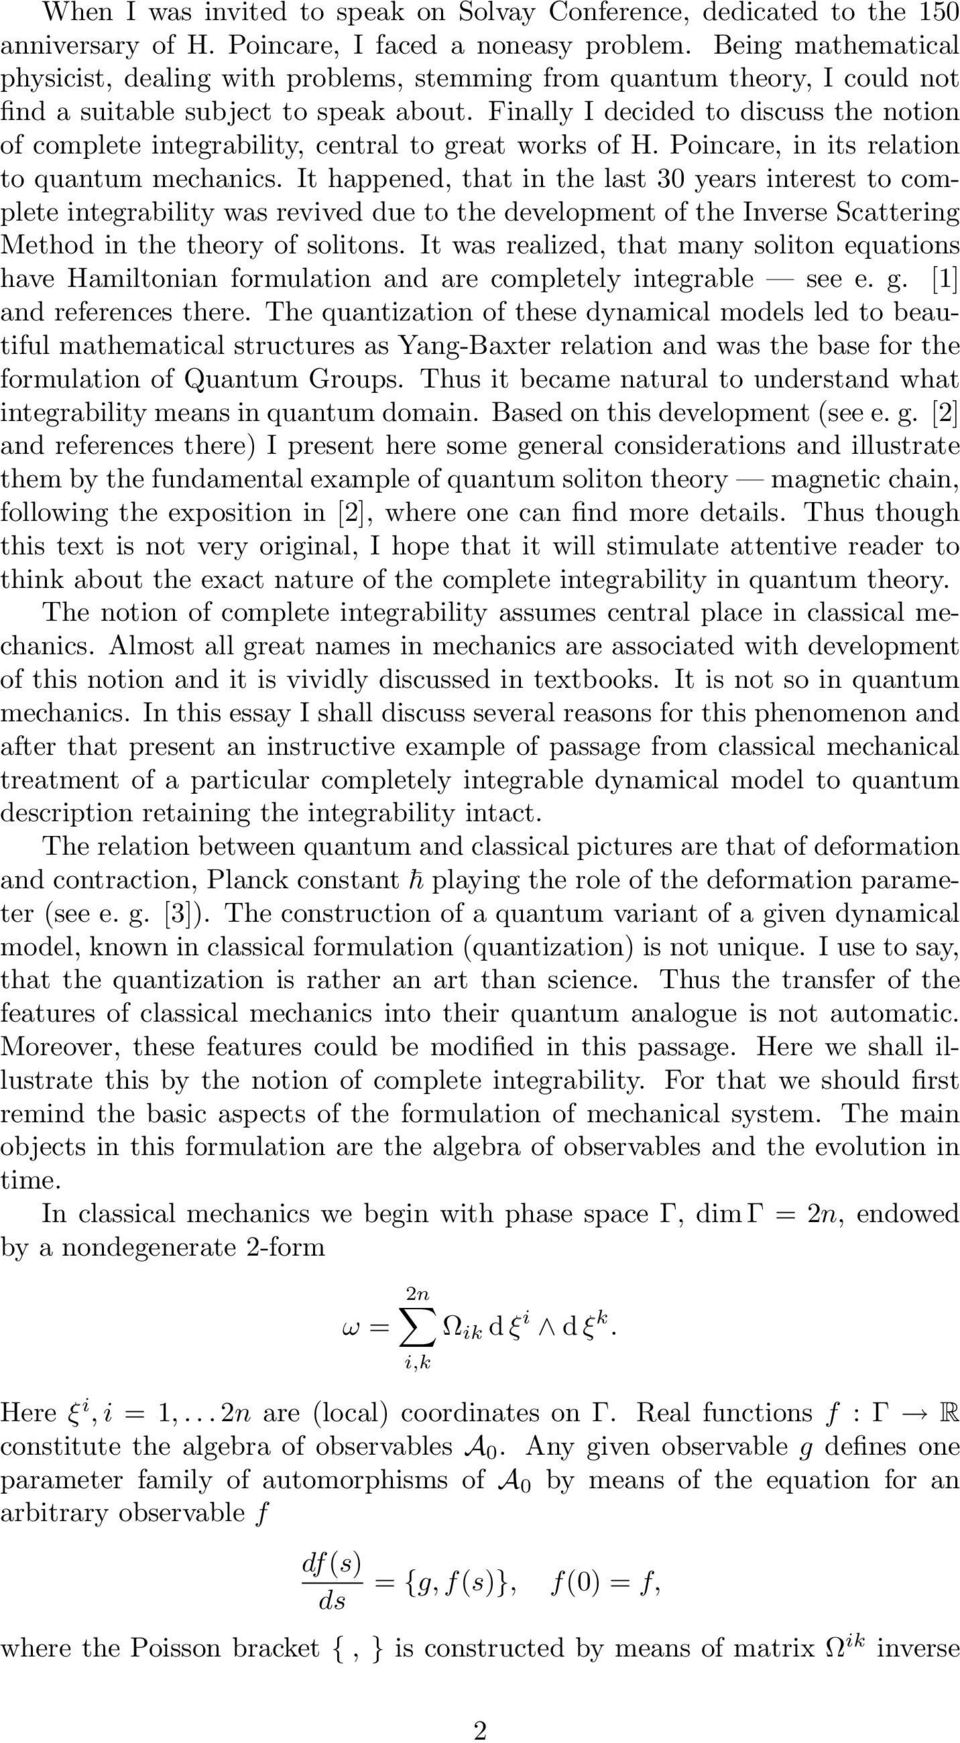 Finally I decided to discuss the notion of complete integrability, central to great works of H. Poincare, in its relation to quantum mechanics.